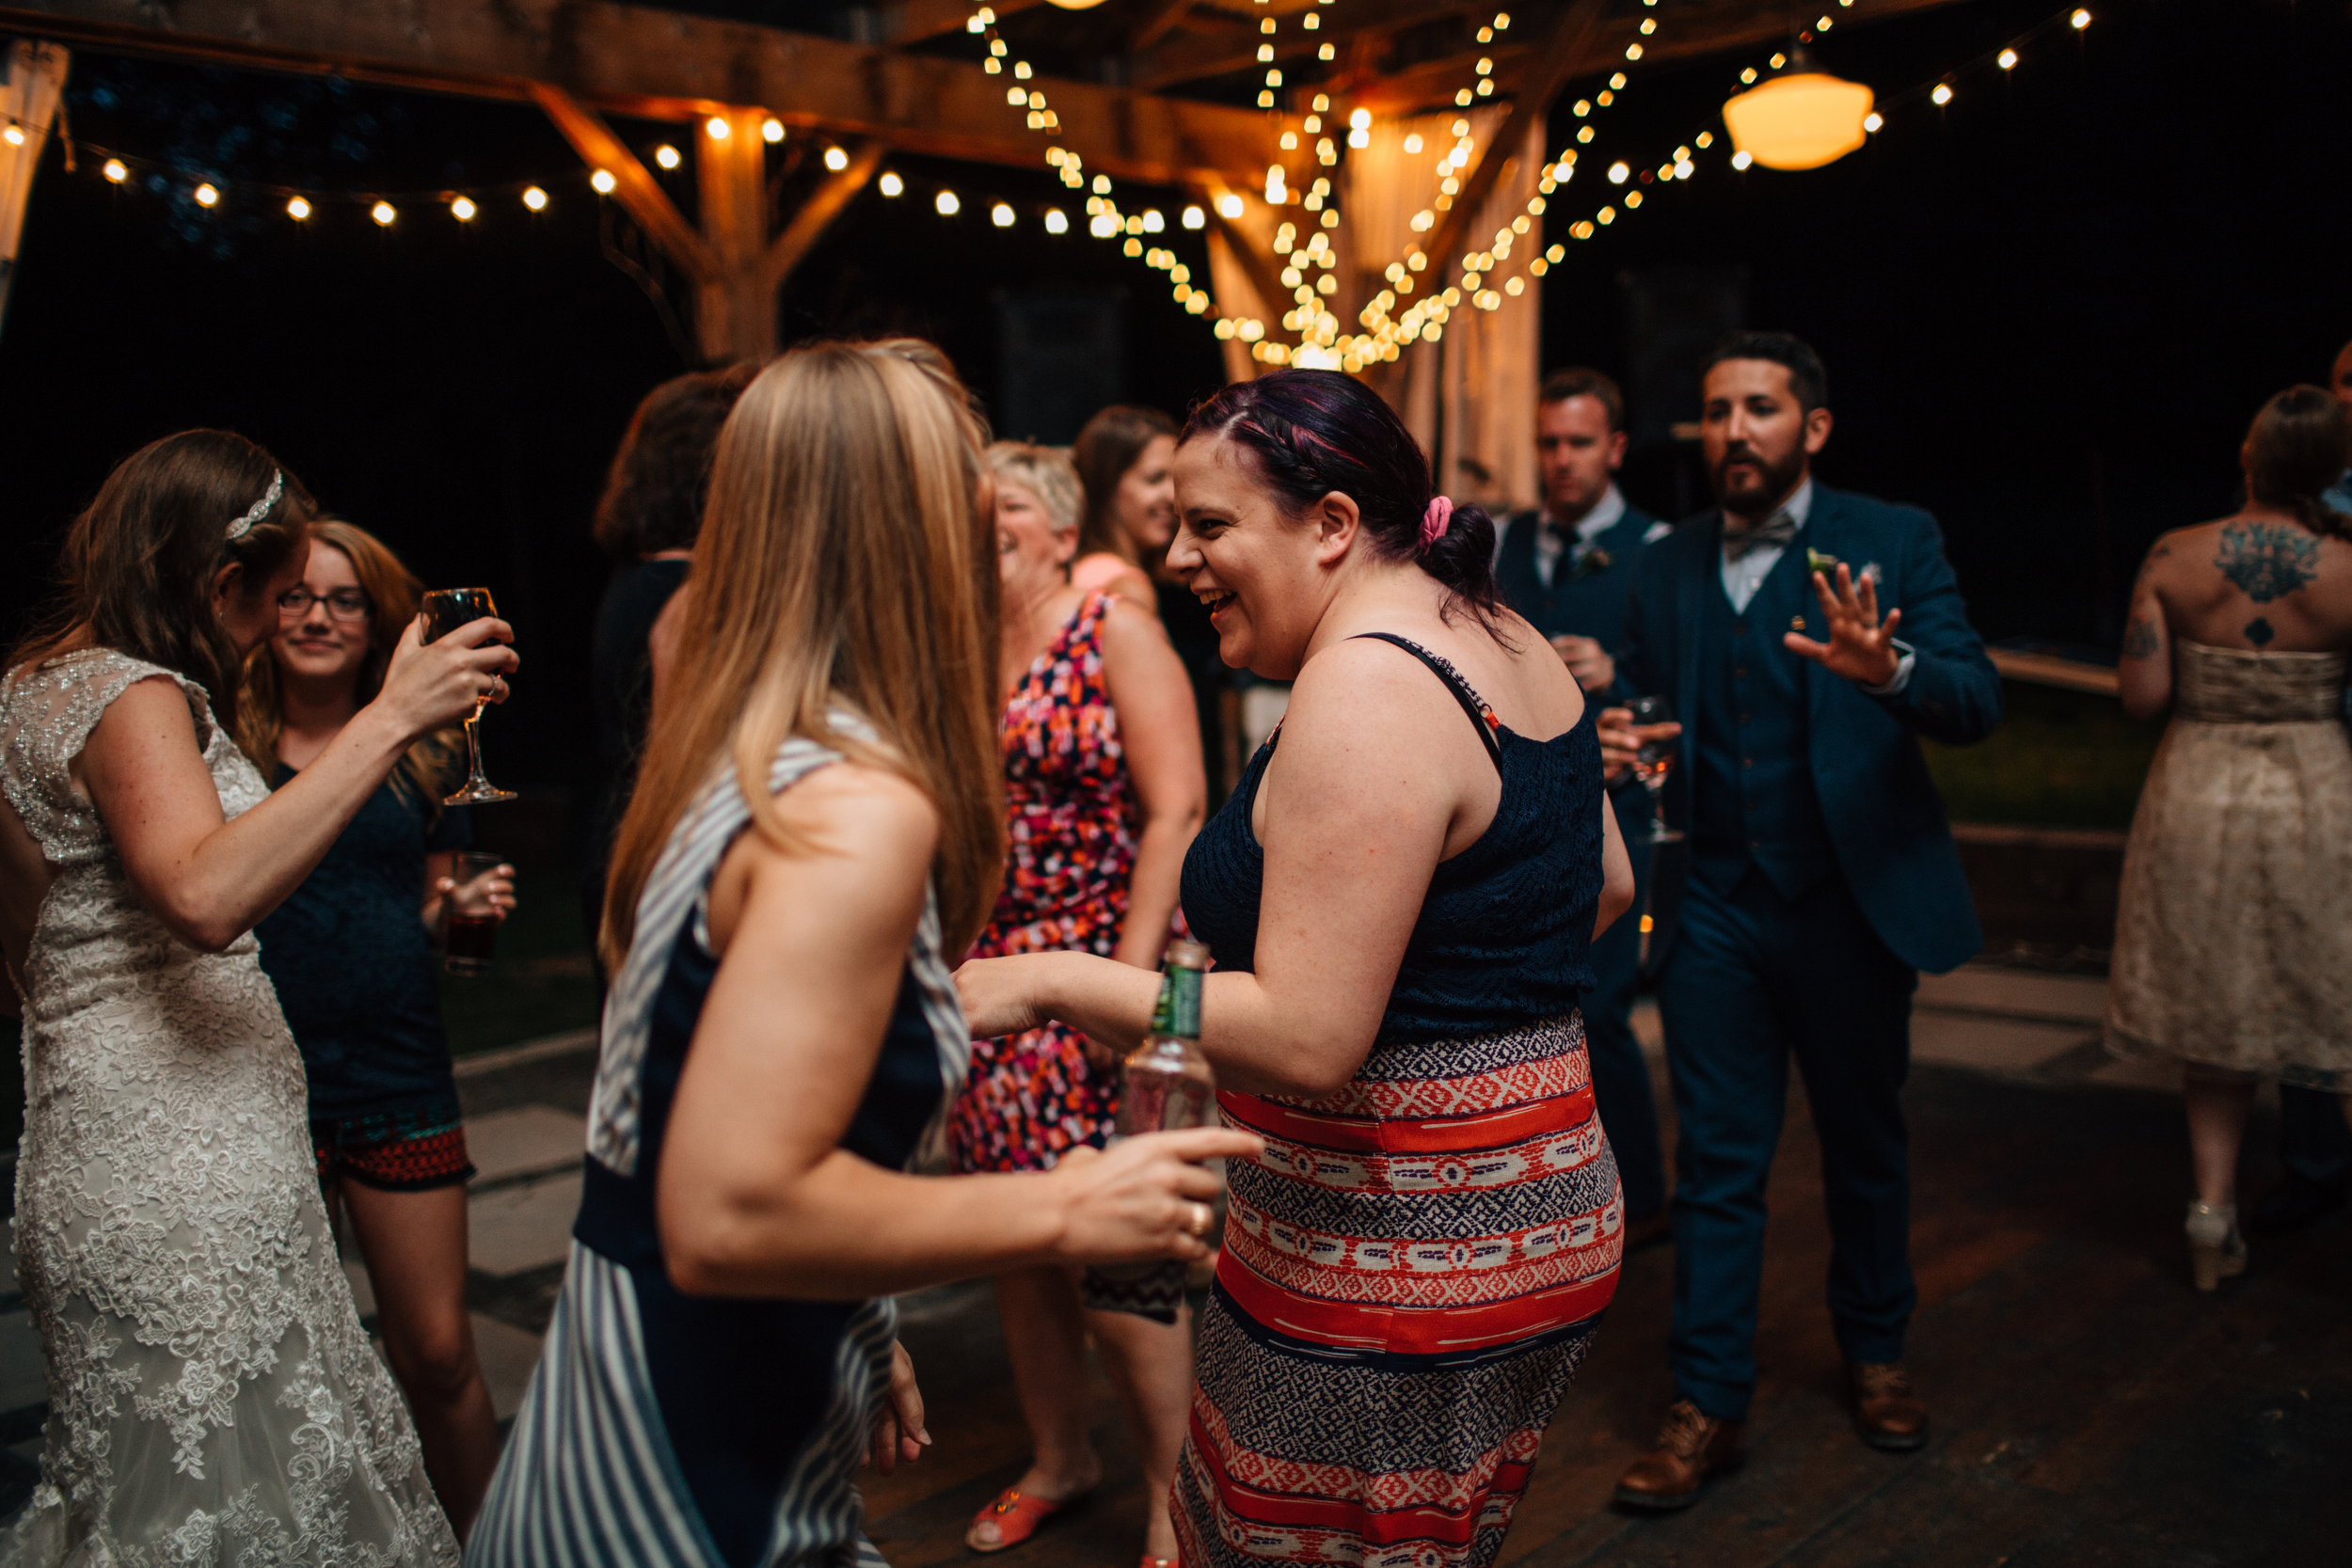 KELLIandBRADweddingJUNE2015 - reception (349 of 384).jpg